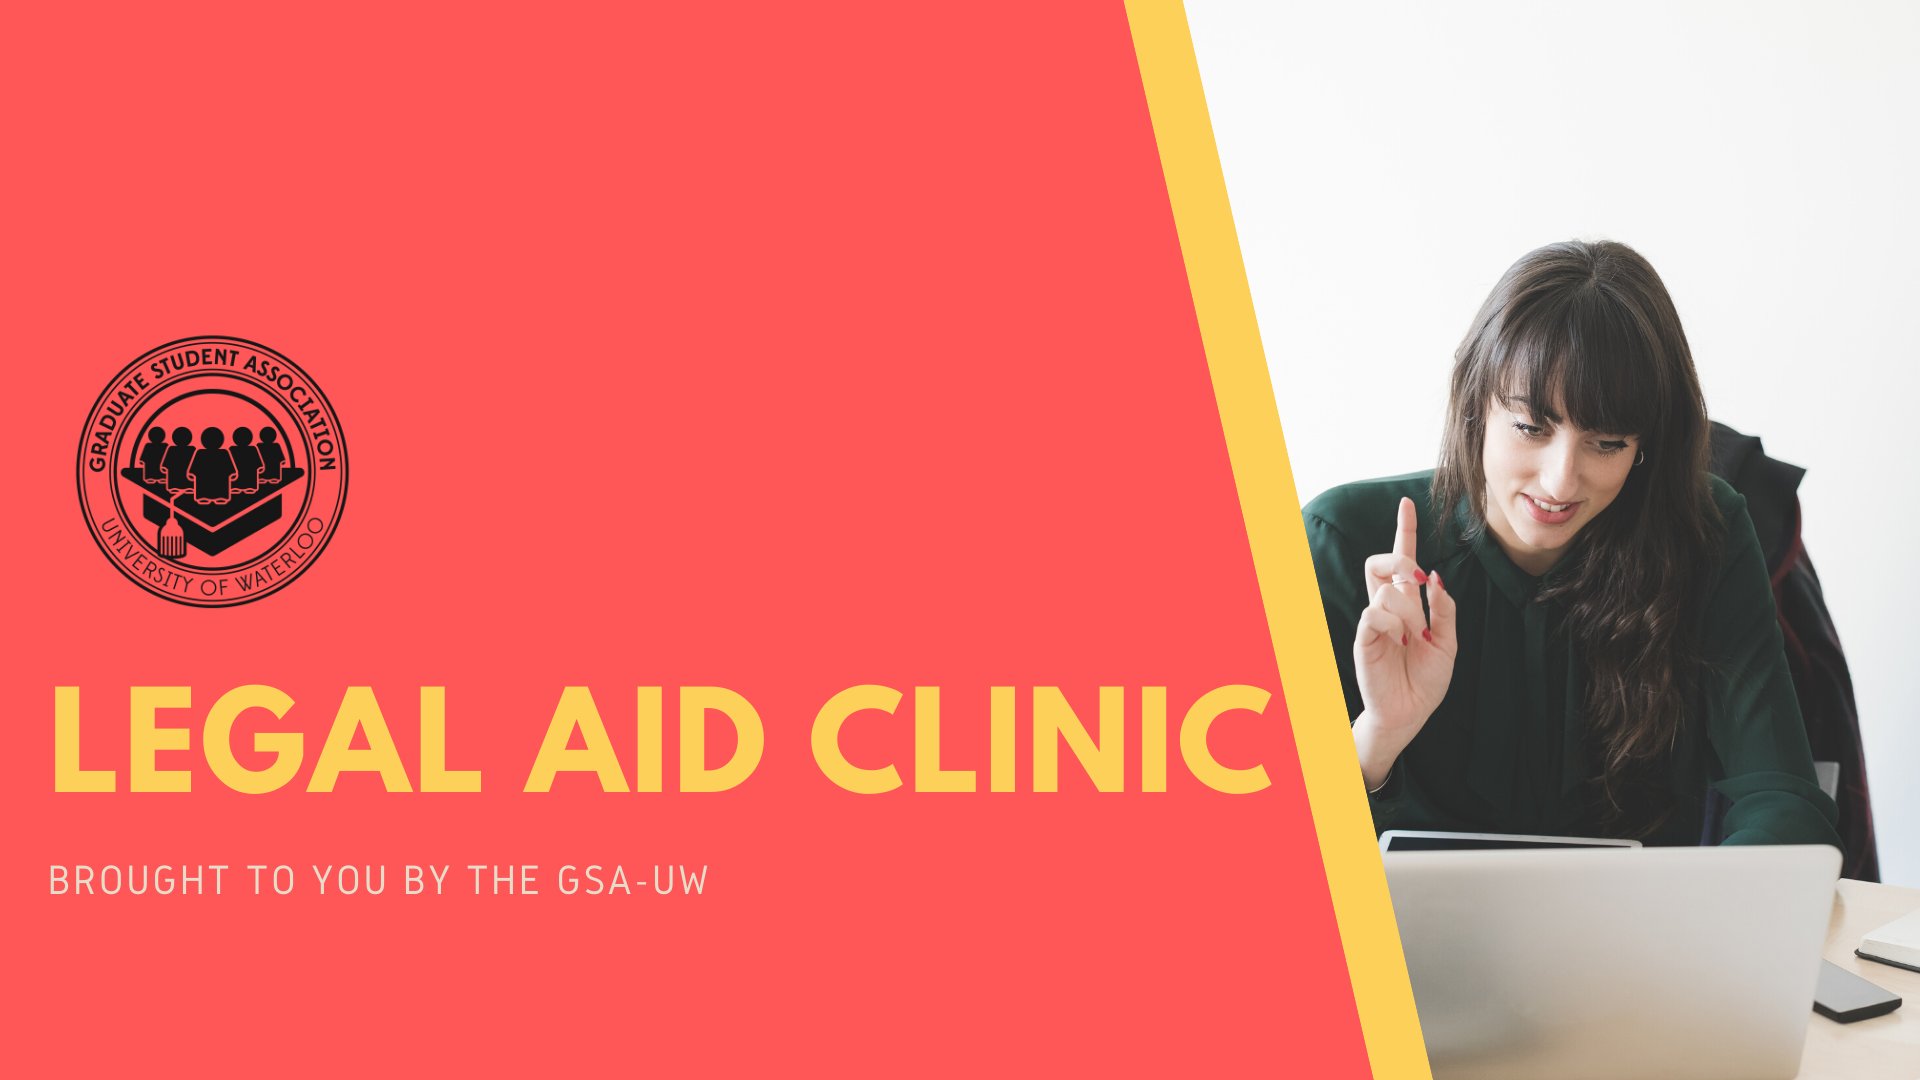 GSA Legal Aid Clinic